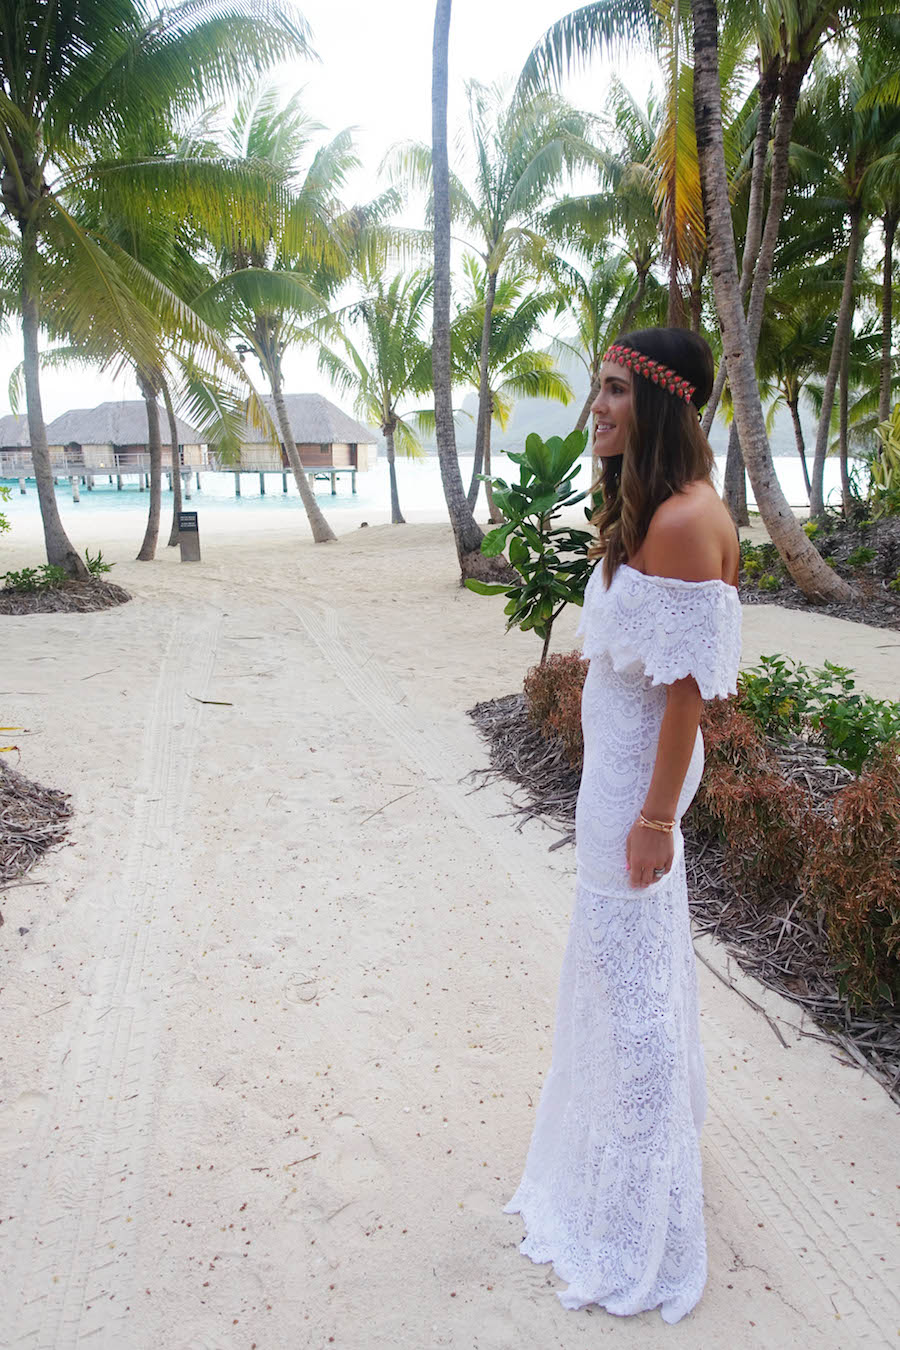 bora bora white dress_sbk